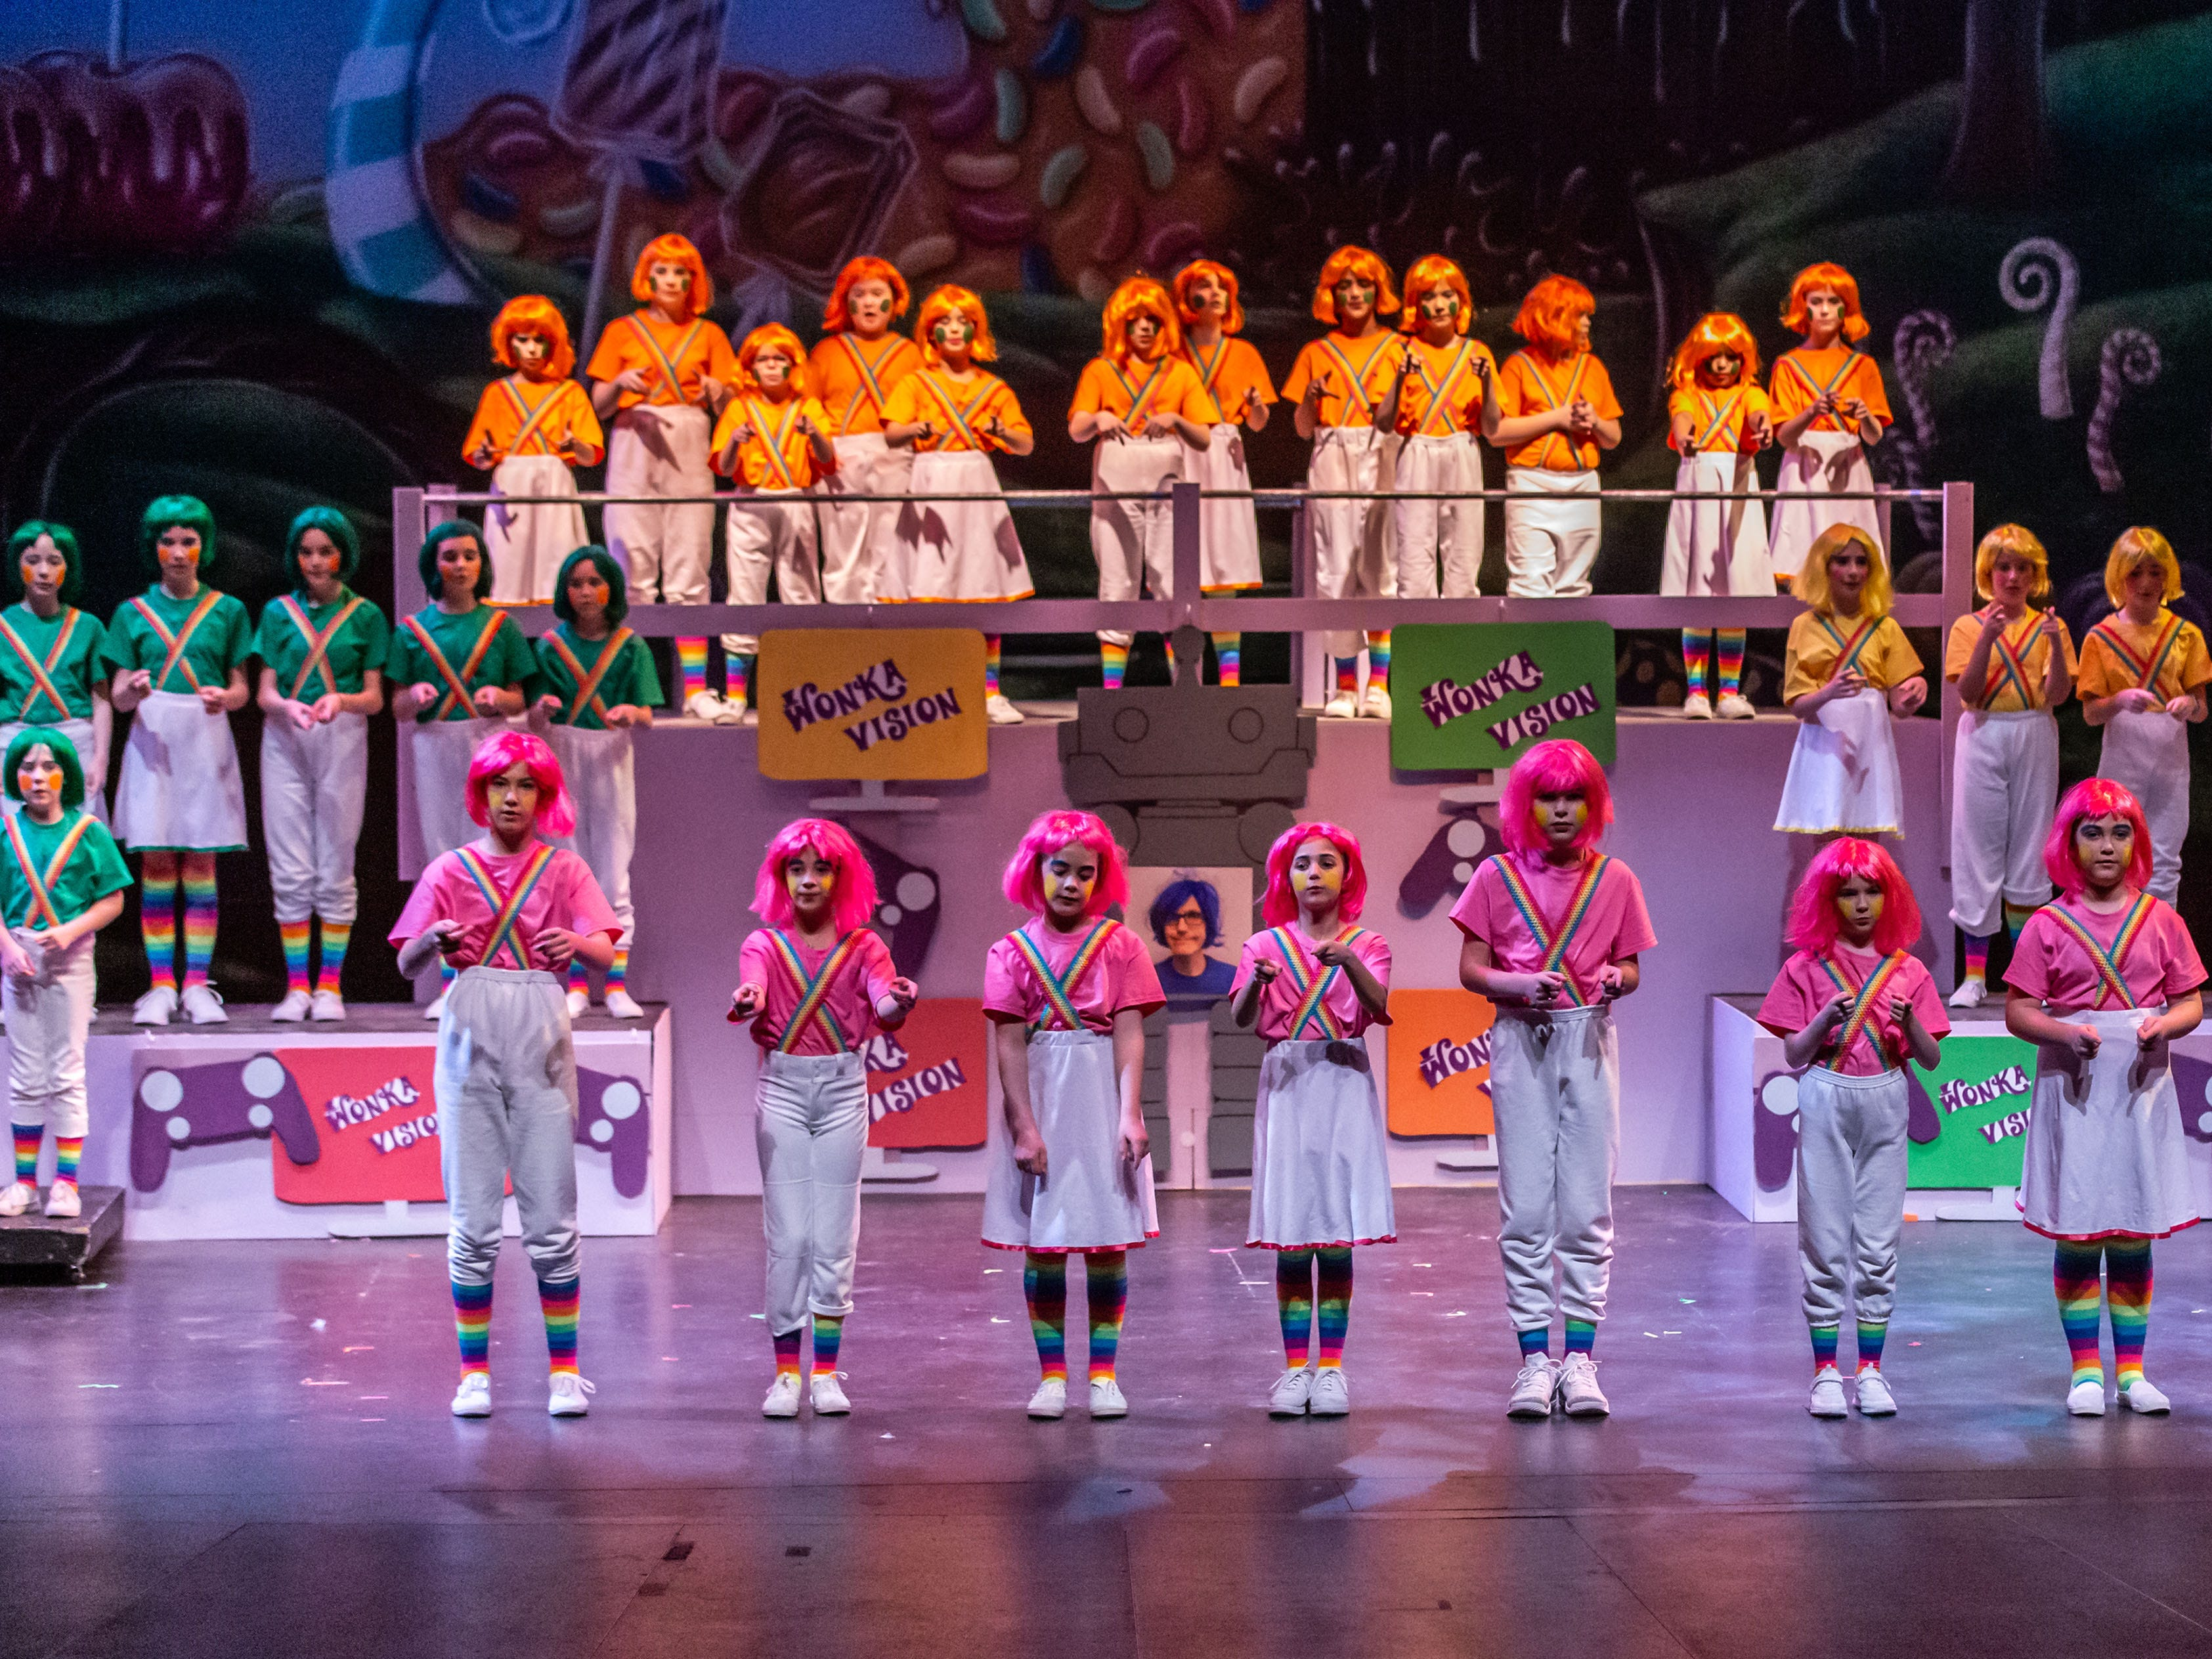 Brookfield Elementary students perform a scene from Roald Dahl's Willy Wonka Jr. during rehearsal at the Sharon Lynne Wilson Center for the Arts in Brookfield on Saturday, March 2, 2019. Public performances are at 7 p.m. on March 2 and 2 p.m. on March 3.